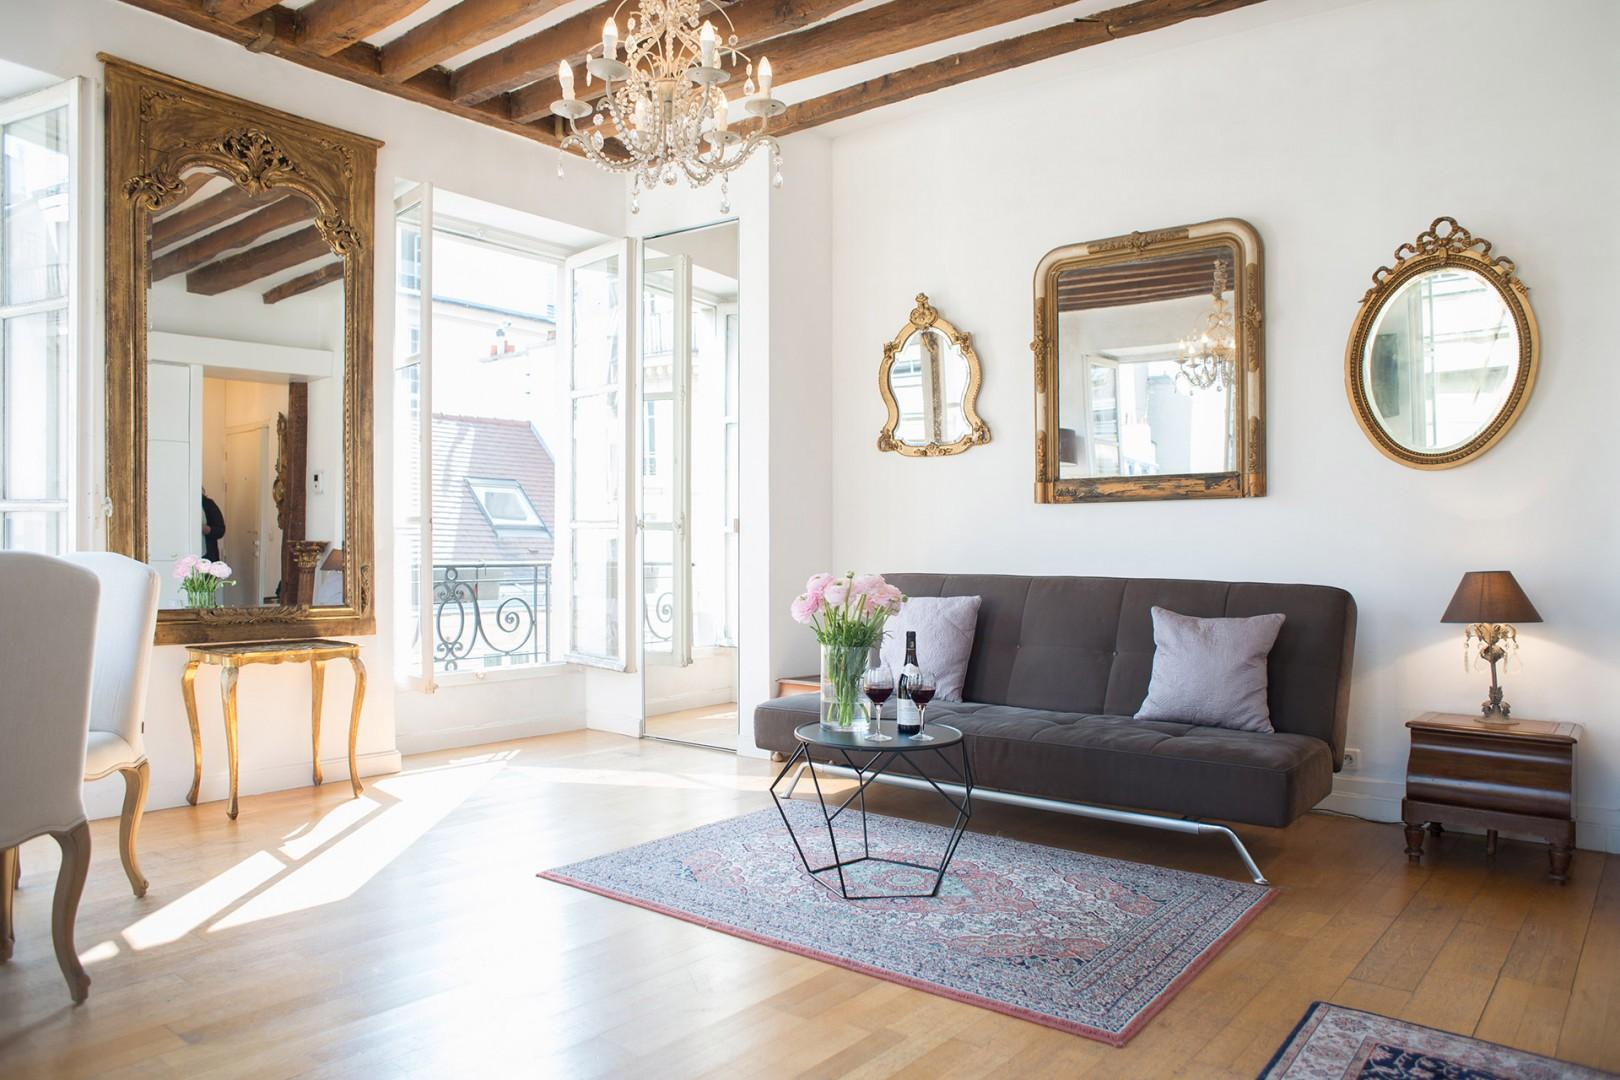 Welcome to the stunning living room with high ceilings and natural light!